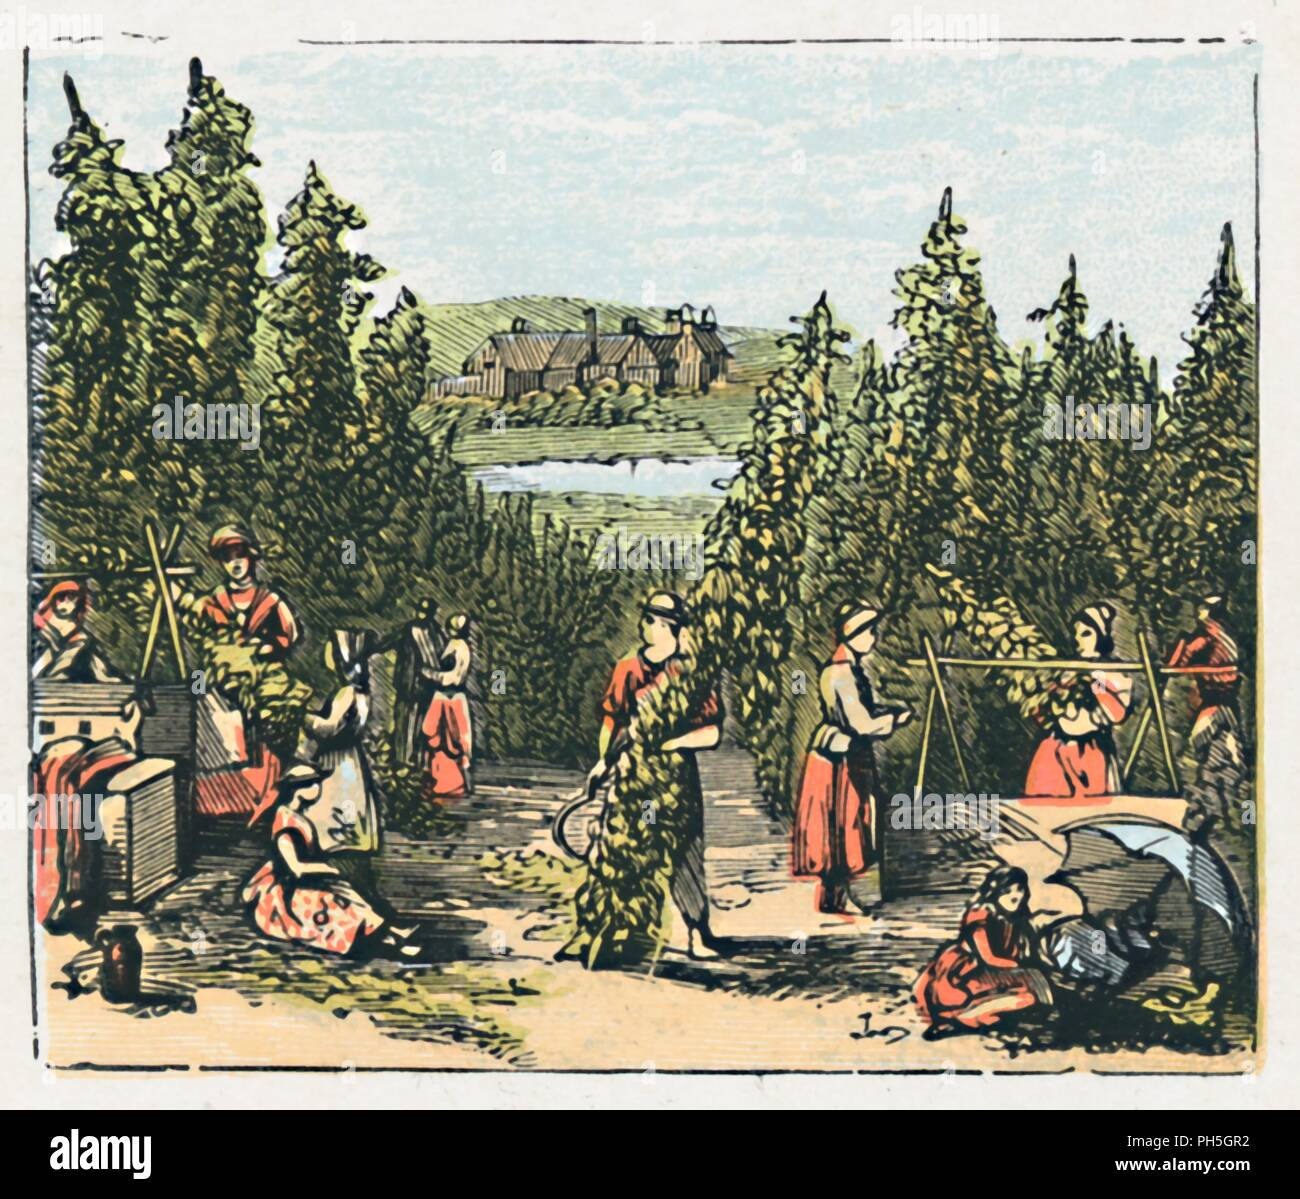 'Maidstone', c1910. 'One of the centres of the Hop-growing districts. Paper. Agricultural Implements. Brick and Cement Works. Population, 37,210'. Card from a game 'containing views of the chief towns in each county, their products & notable buildings etc, beautifully printed in colours'. From The Counties of England - A Geographical Game. [John Jaques & Son, Ltd., London]. Stock Photo